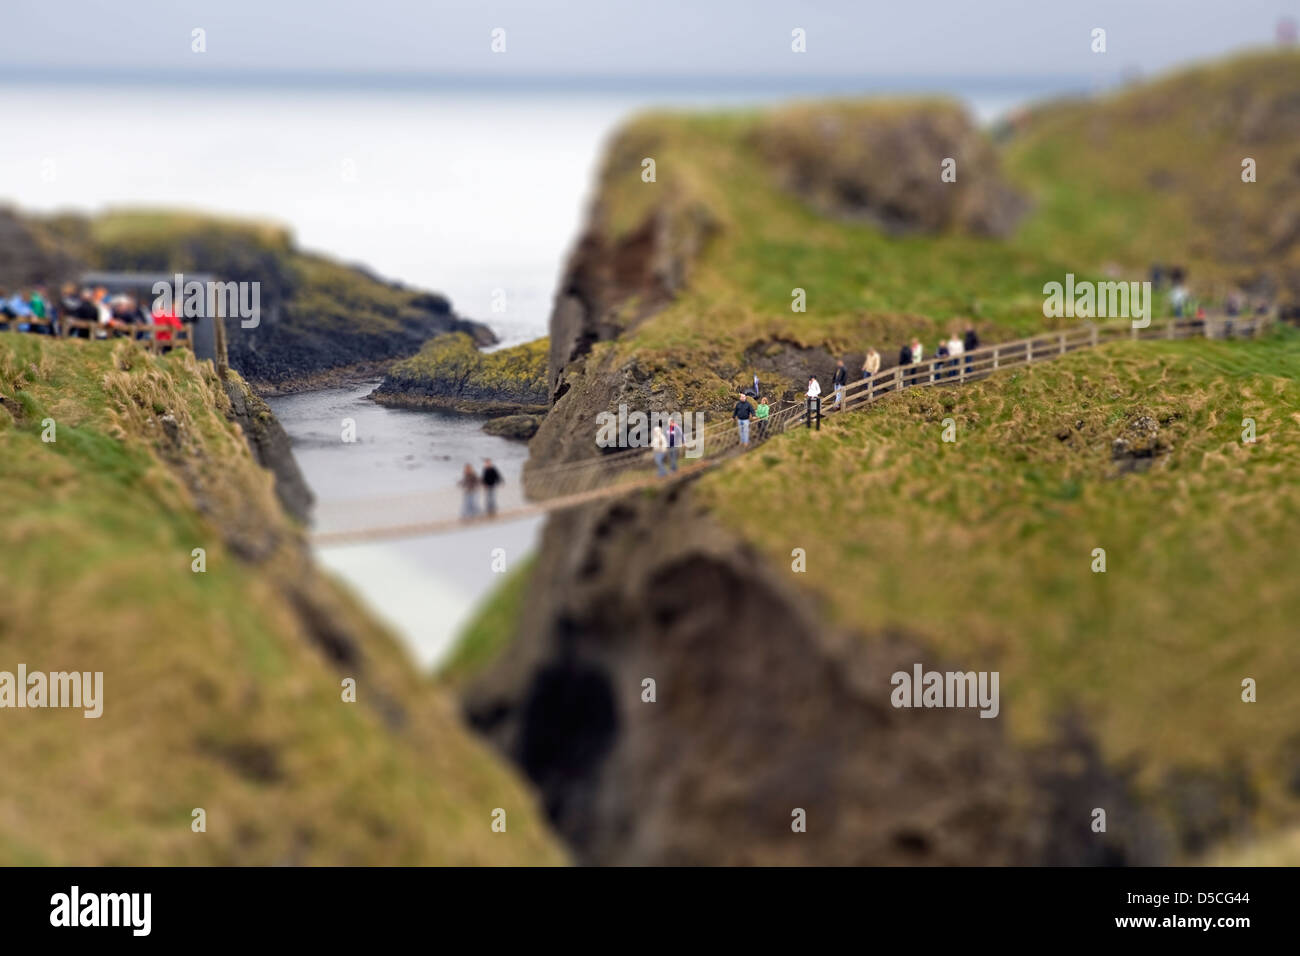 Carrick-a-rede Rope bridge - Giant causeway coastal road - Northern Ireland - UK - Stock Image